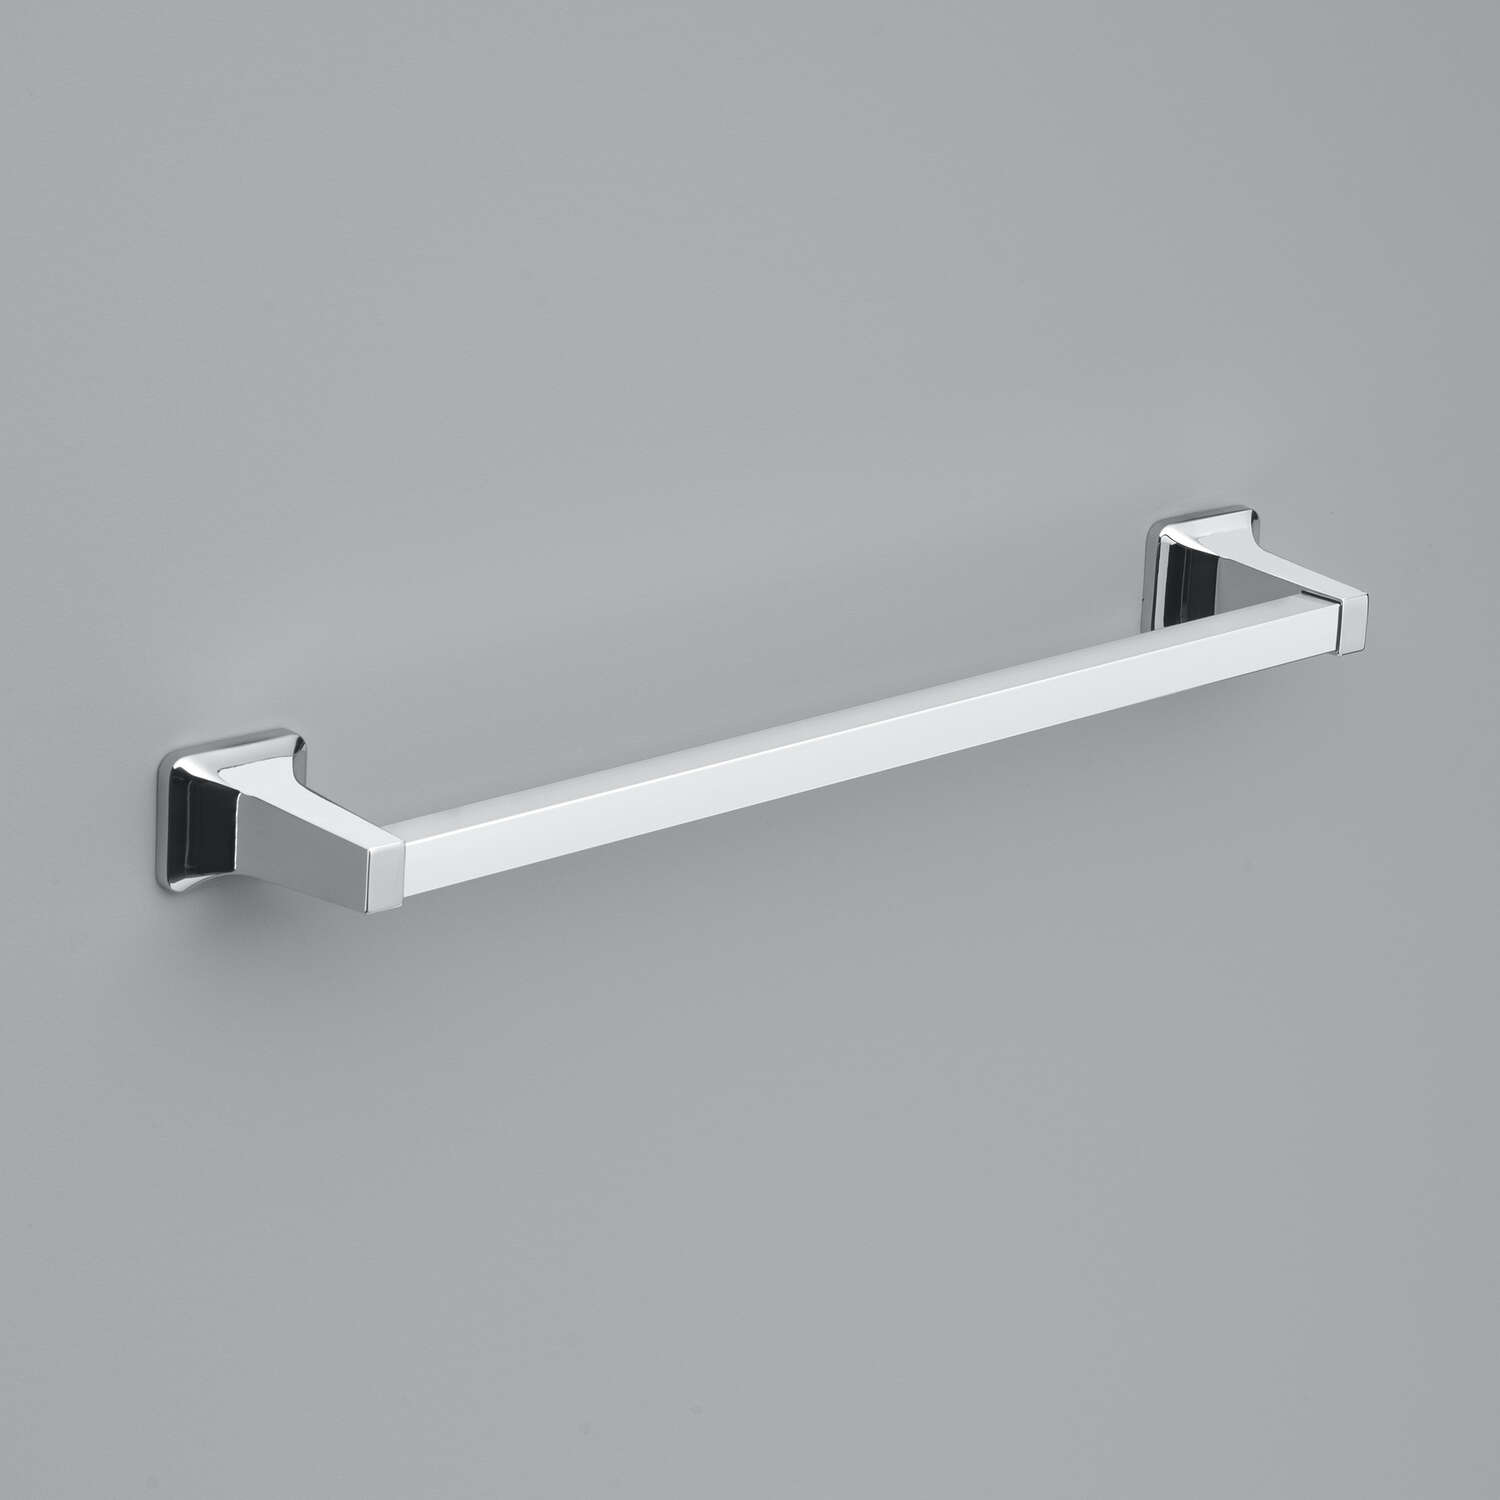 OakBrook  Chrome  Towel Bar  18 in. L Die Cast Zinc